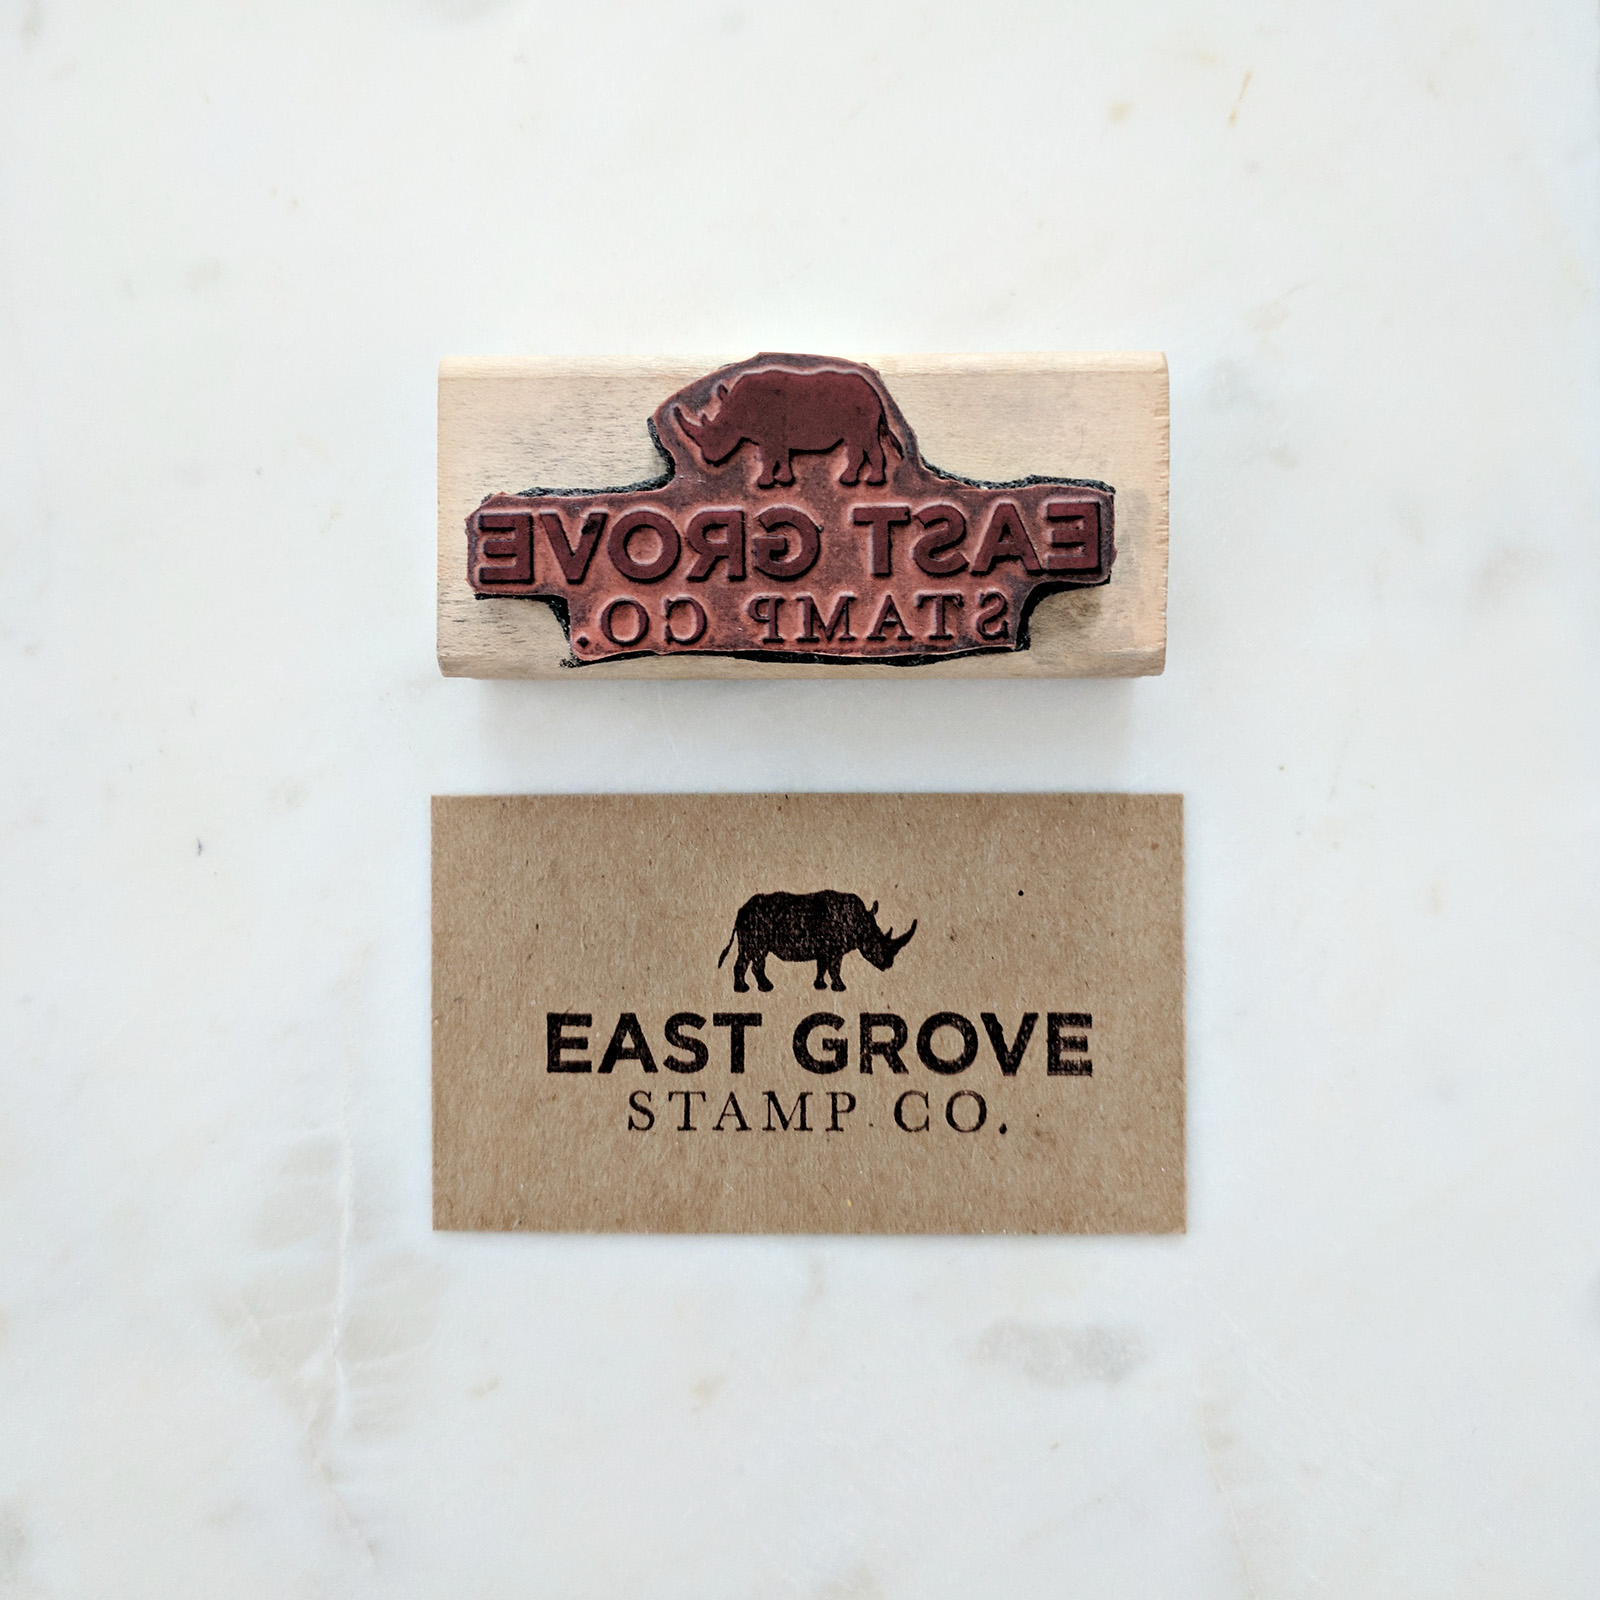 Back of the business card - While we don't actually use our smaller logo stamp for this purpose, I wanted to show how you can achieve a double-sided card.